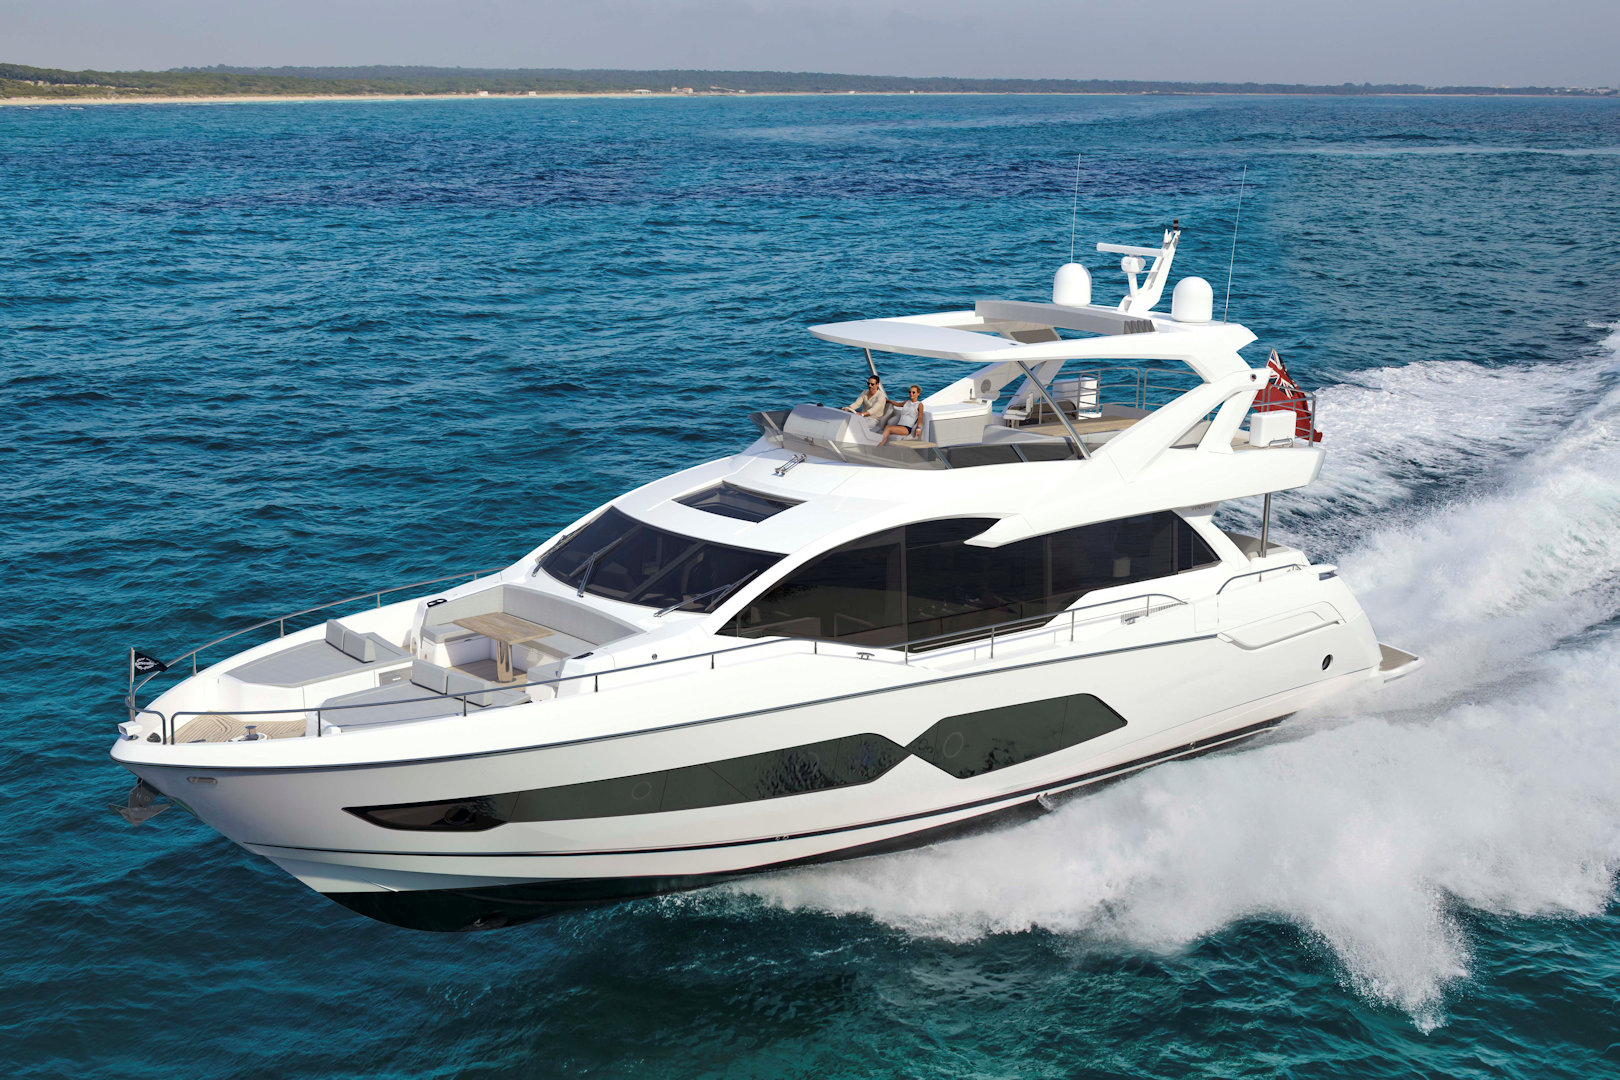 360 VR Virtual Tours of the Sunseeker 76 Yacht – VRCLOUD